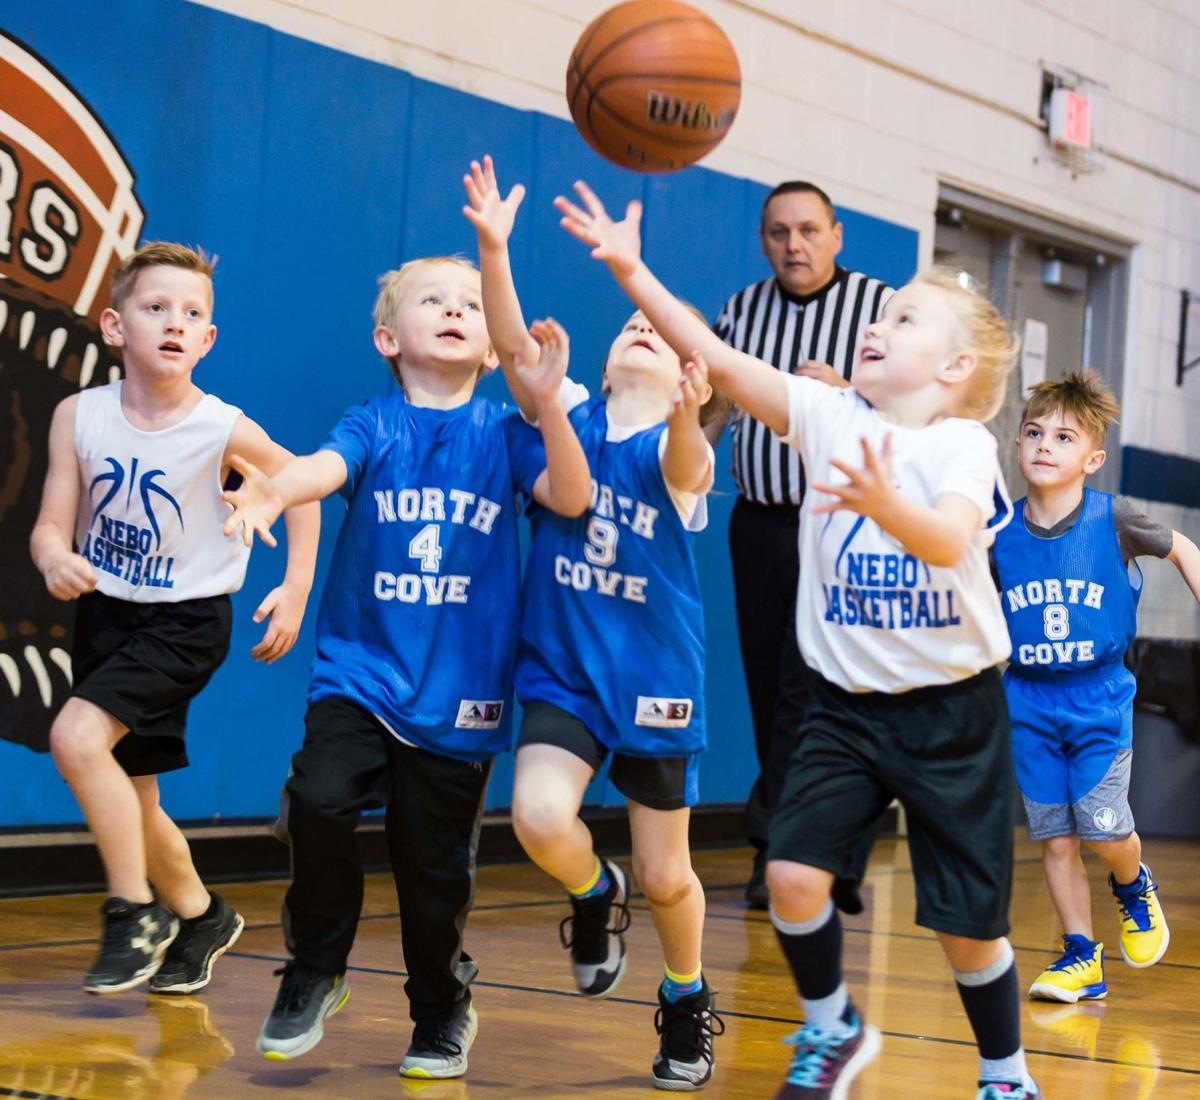 7 sports-youth photo page1.jpg